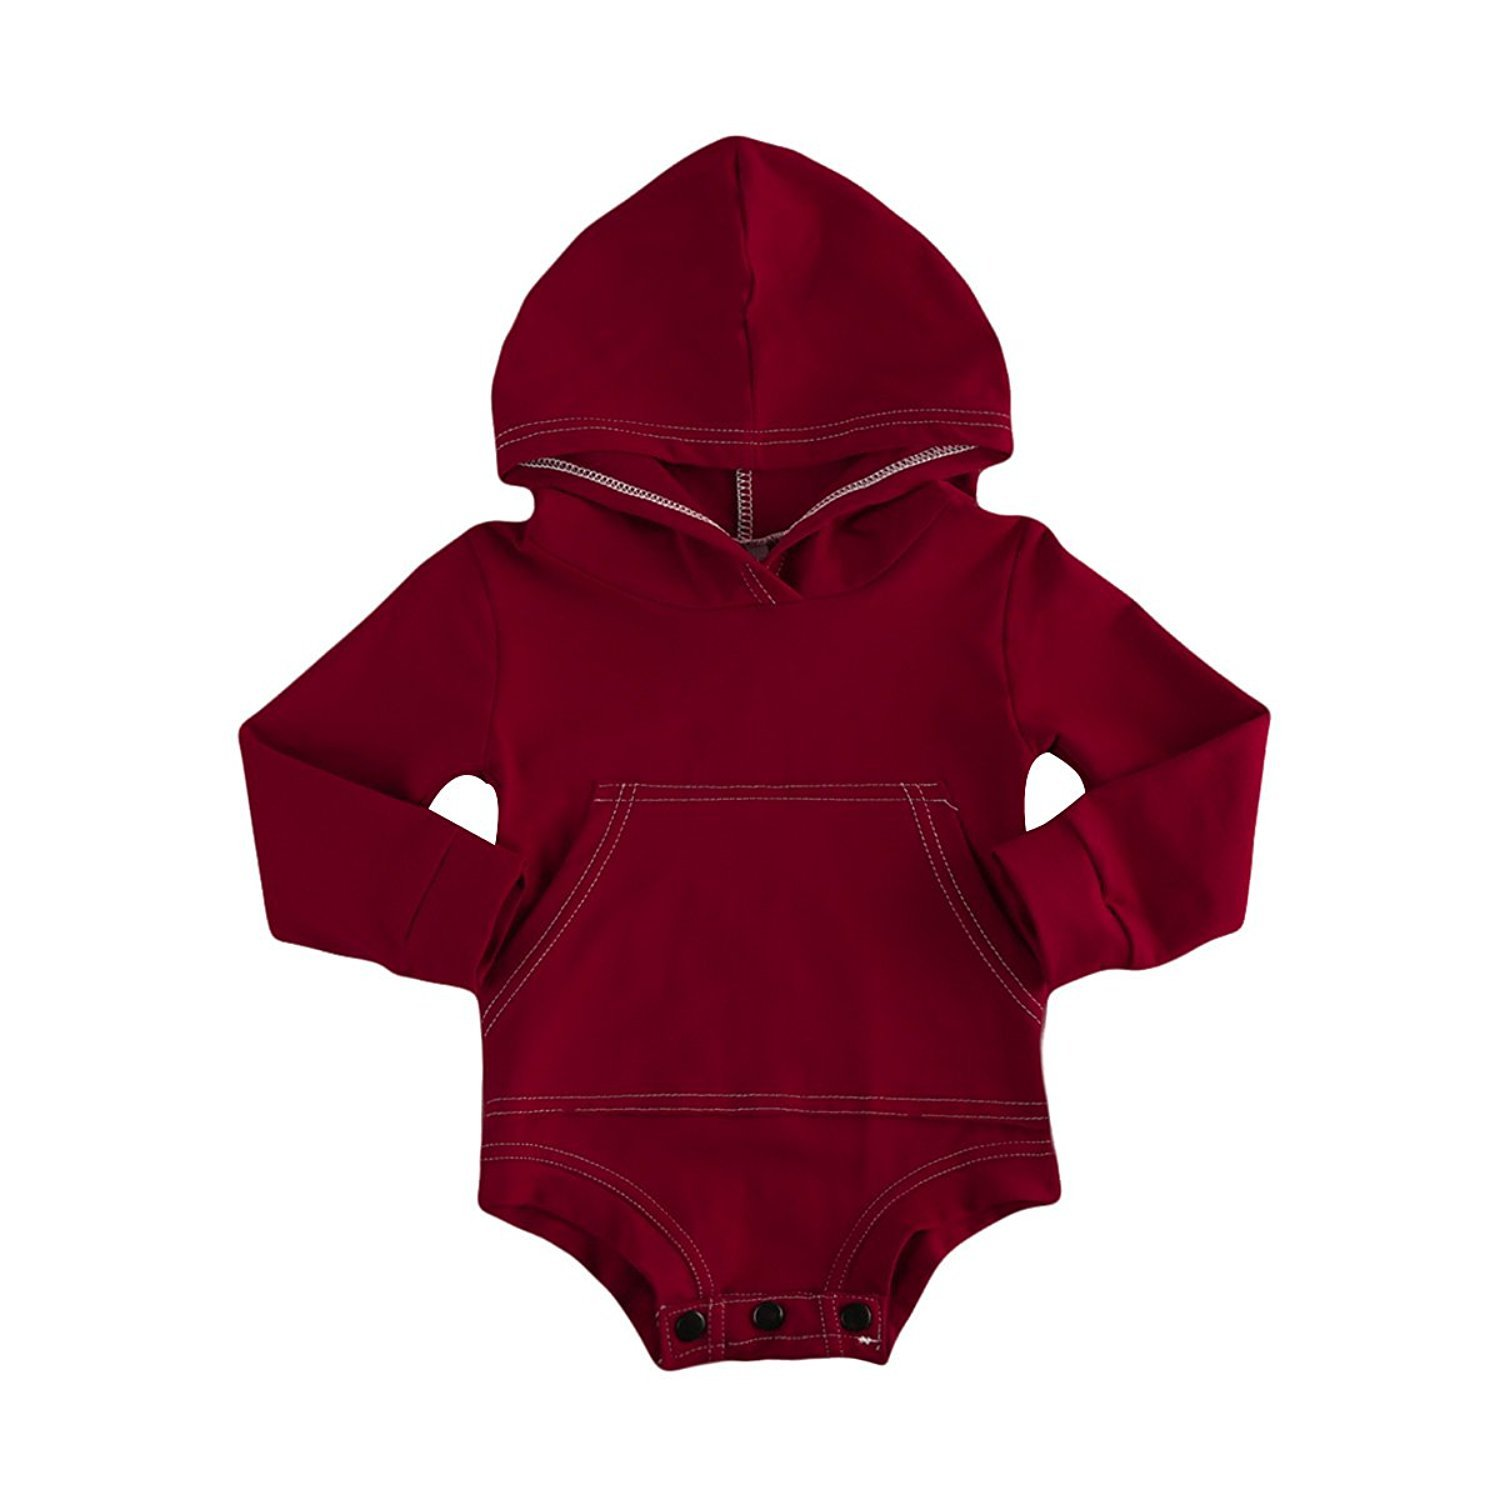 BELS Baby Boys Girls Hoodies Top Romper Jumpsuit with Pocket Clothes 21354